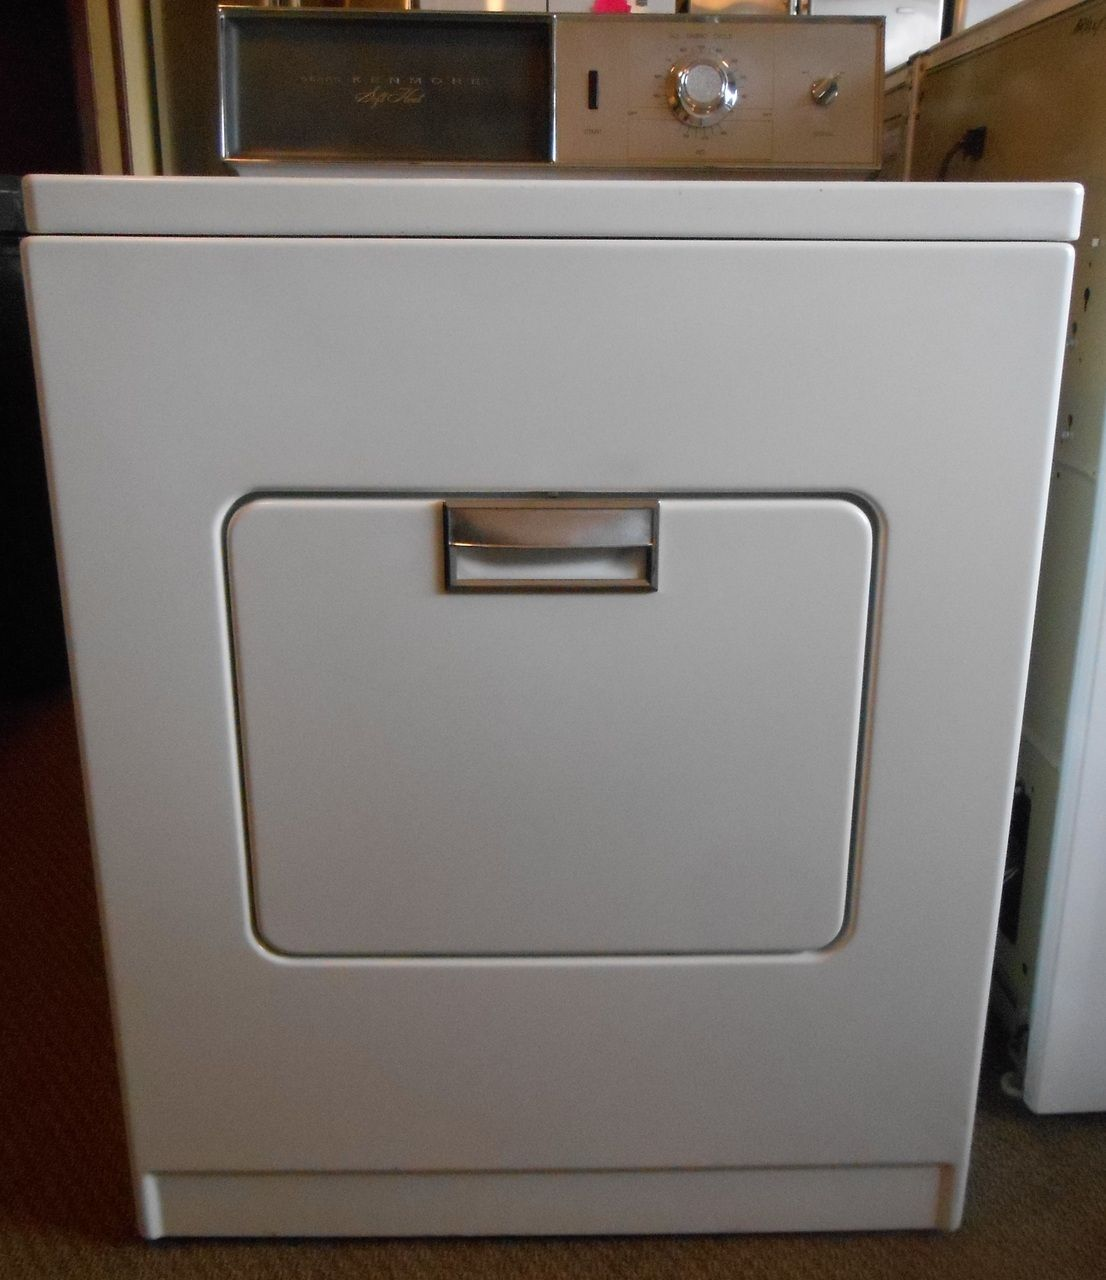 Appliance City Sears Kenmore Vintage Electric Dryer Automatic Permanent Care Rebuilt Has New Rollers Idler Belt A